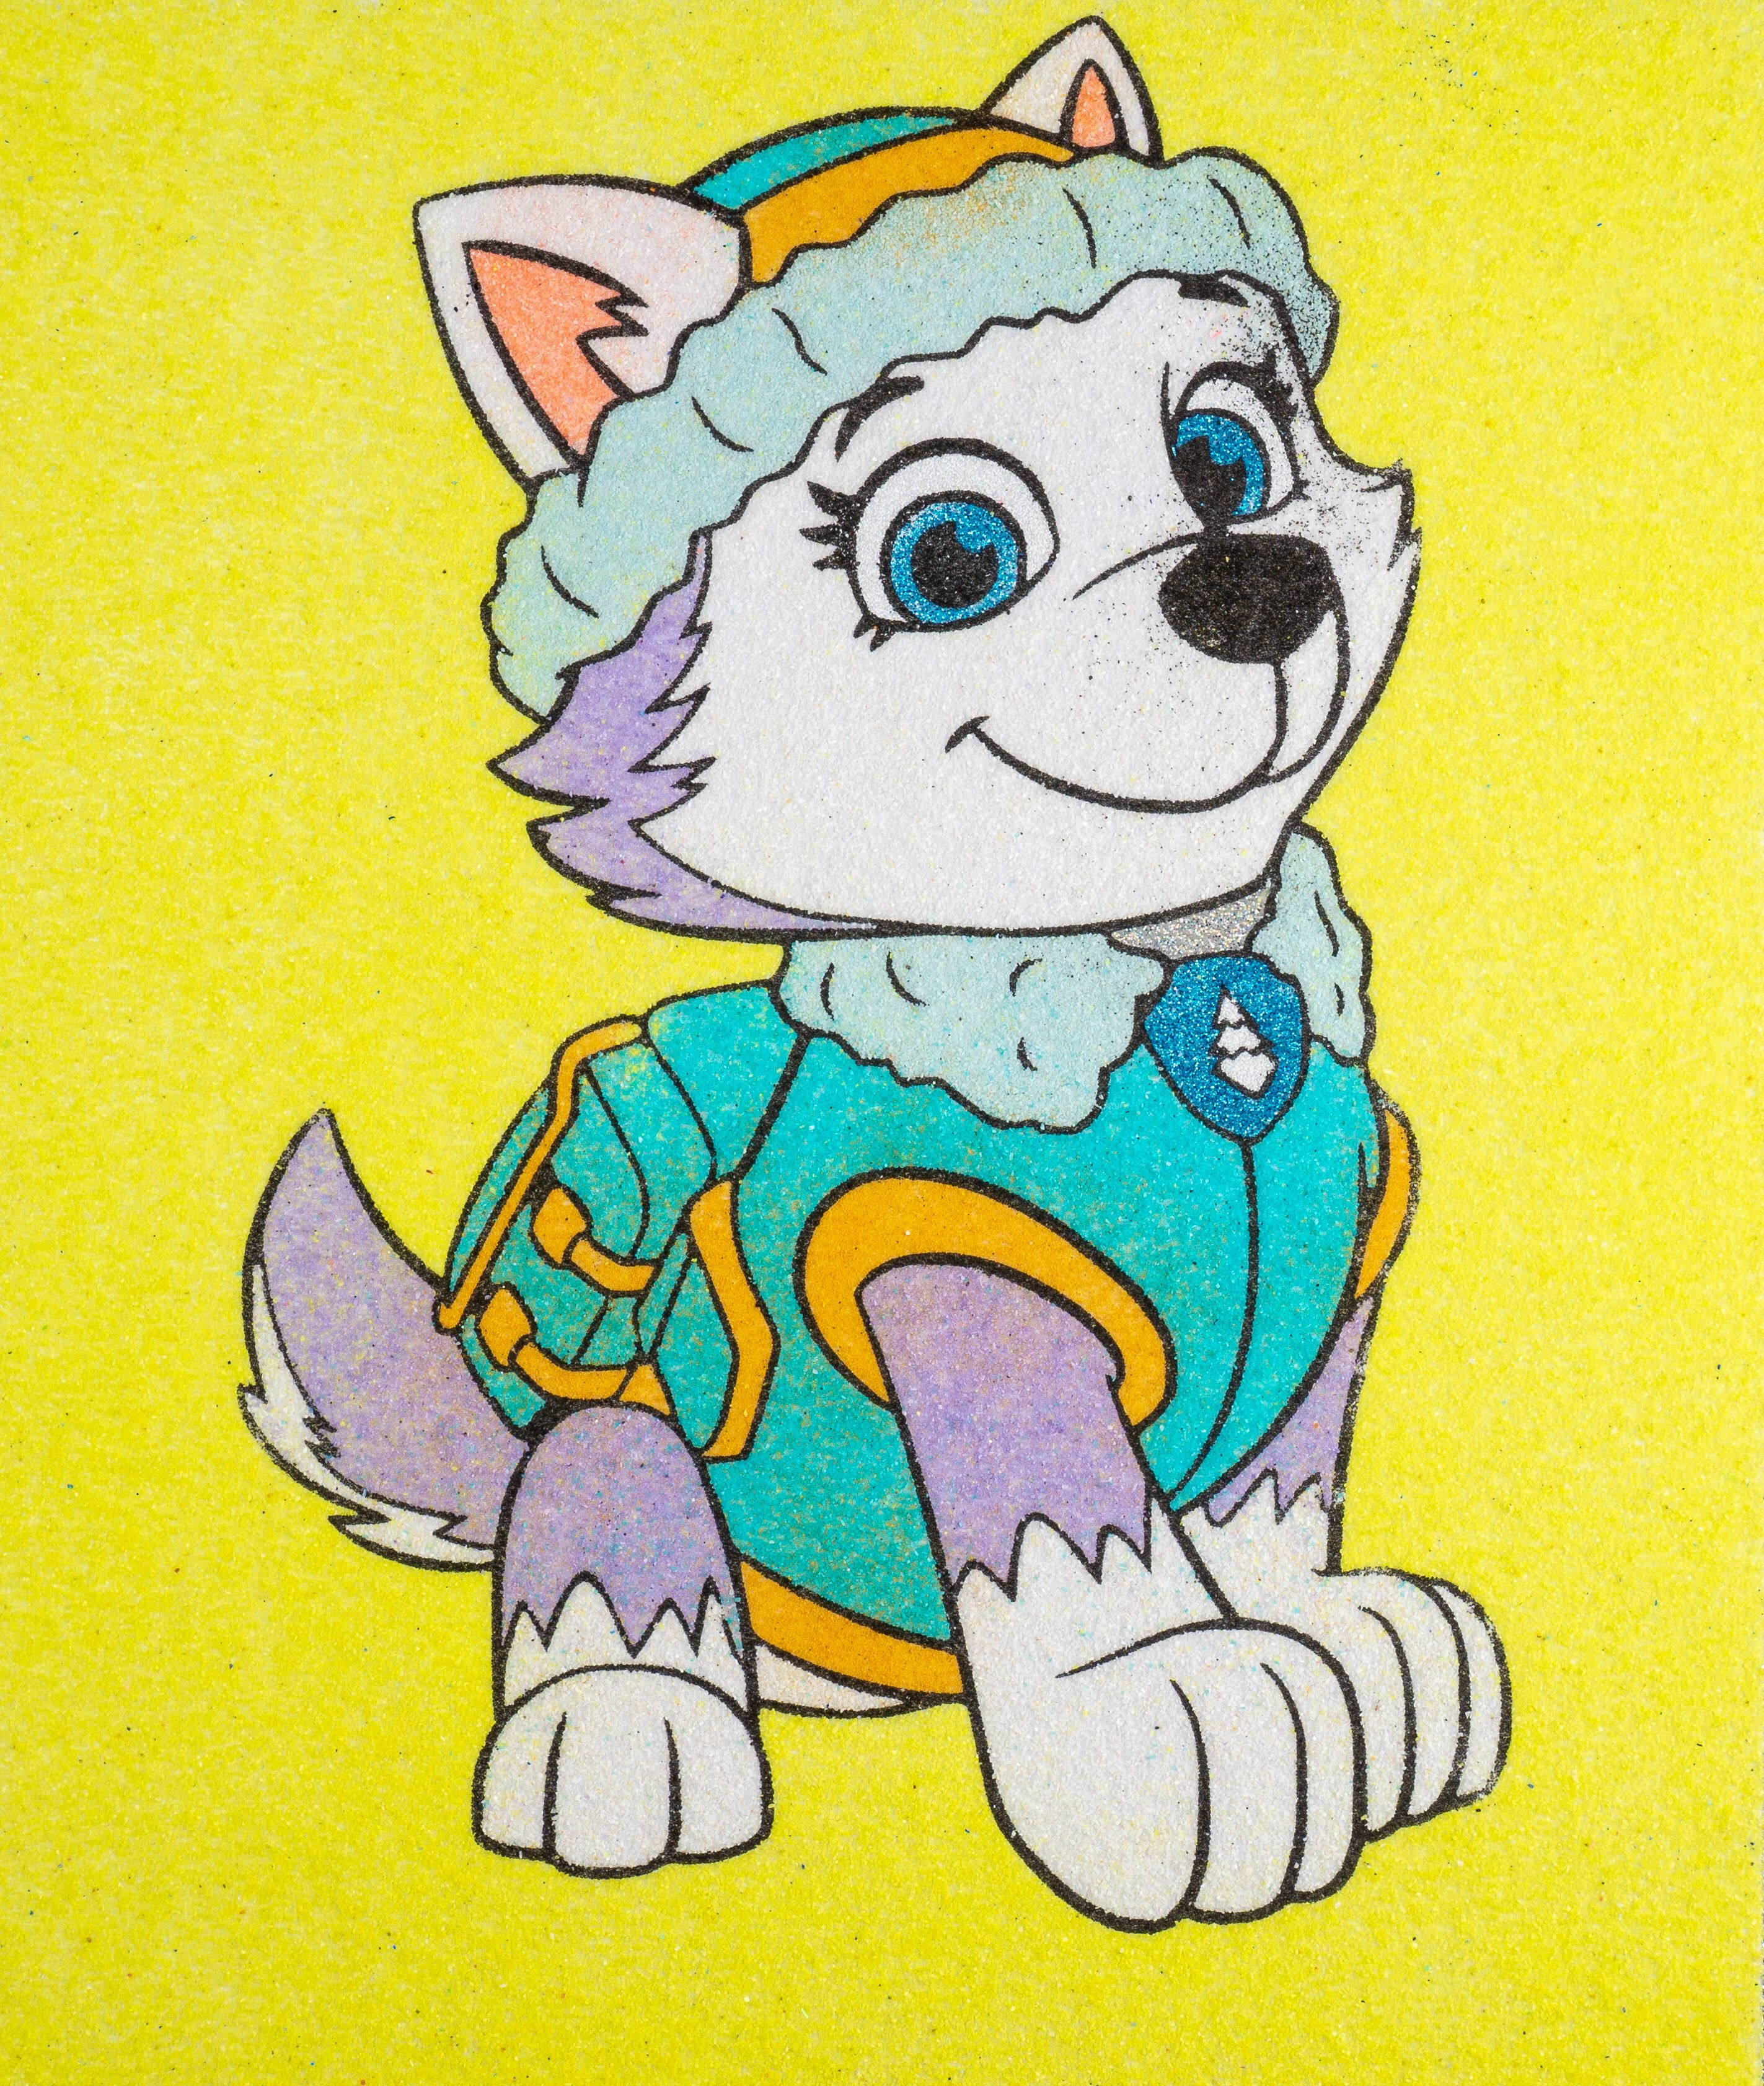 Coloring Everest Paw Patrol With Sand Paw Patrol Sand Coloring Sheets For Children Youtube Everest Paw Patrol Paw Patrol Paw Patrol Characters